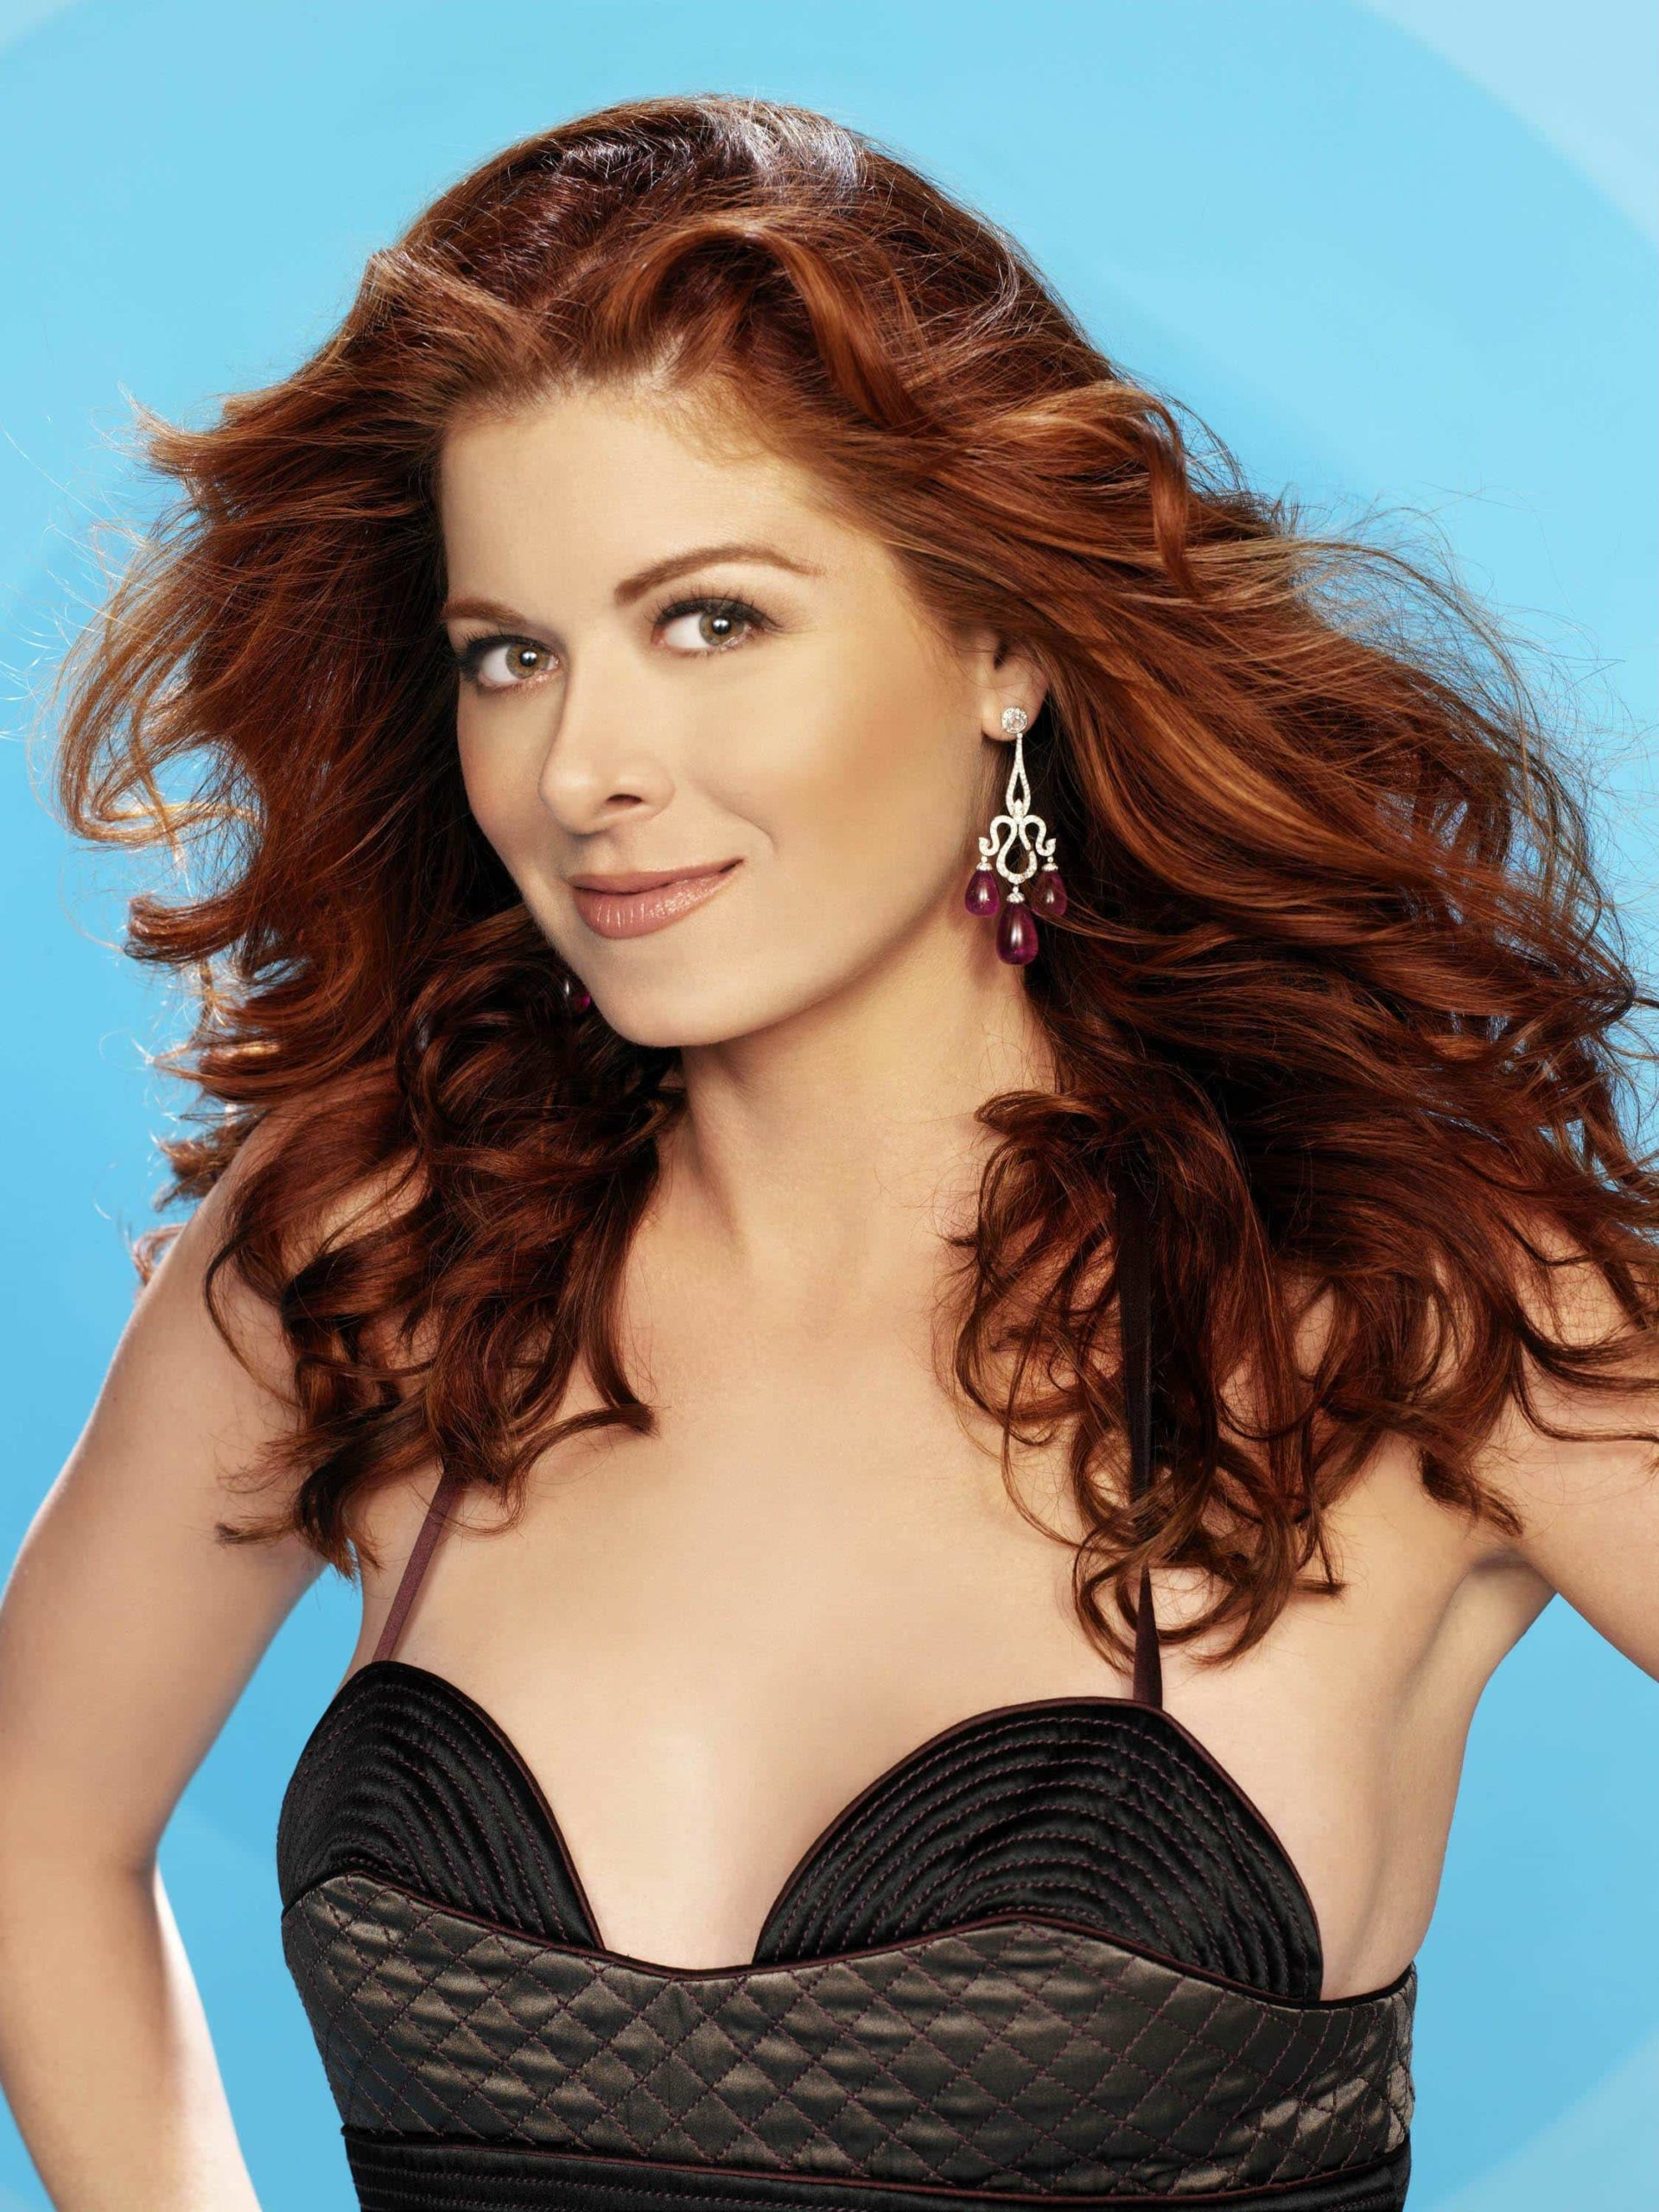 Debra-Messing-debra-messing-32317538-2250-3000